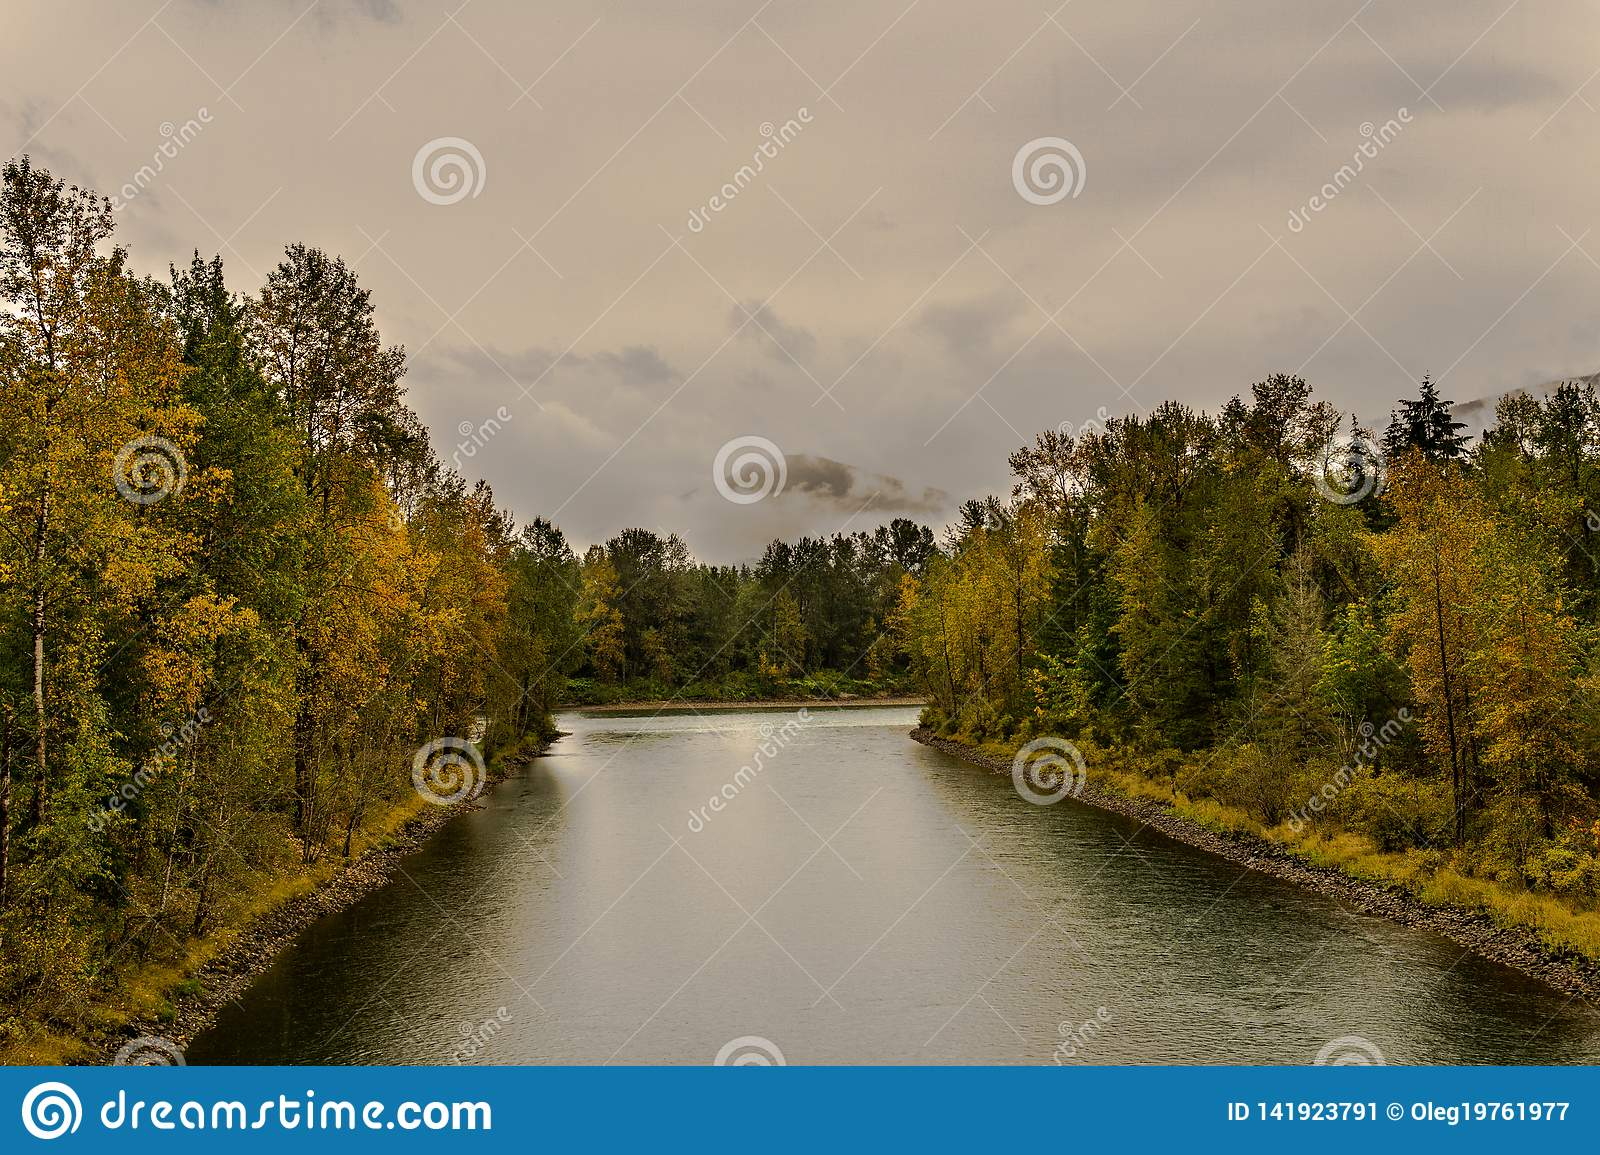 baker river in a forest at autumn rainy day cloudy sky near Concrete Washington USA